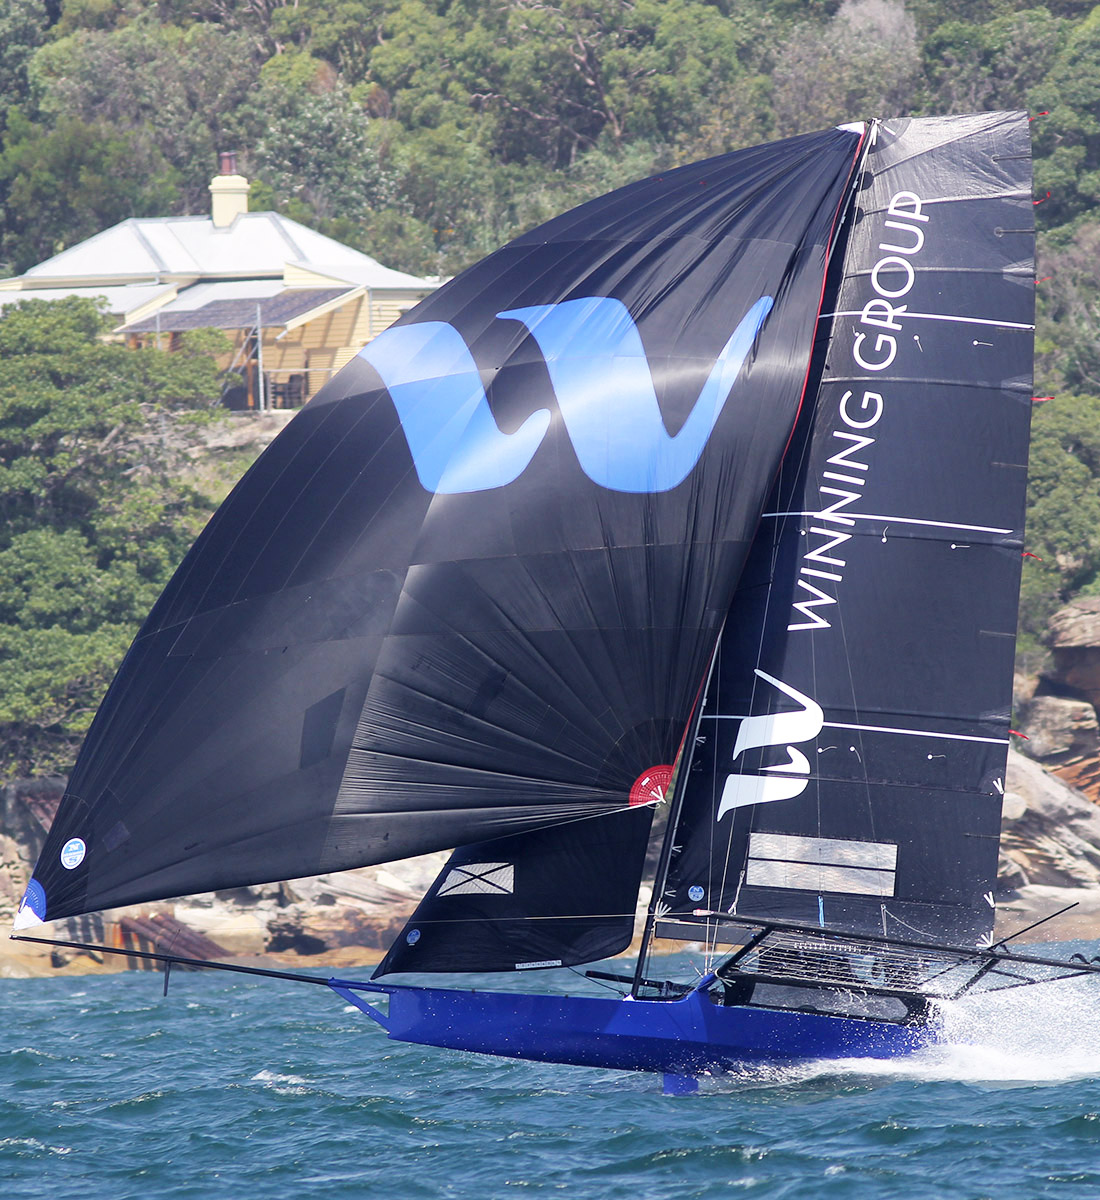 A-capsize-while-leading-Race-4-was-costly-but-Winning-Group-still-leads-the-series---Frank-Quealey-pic